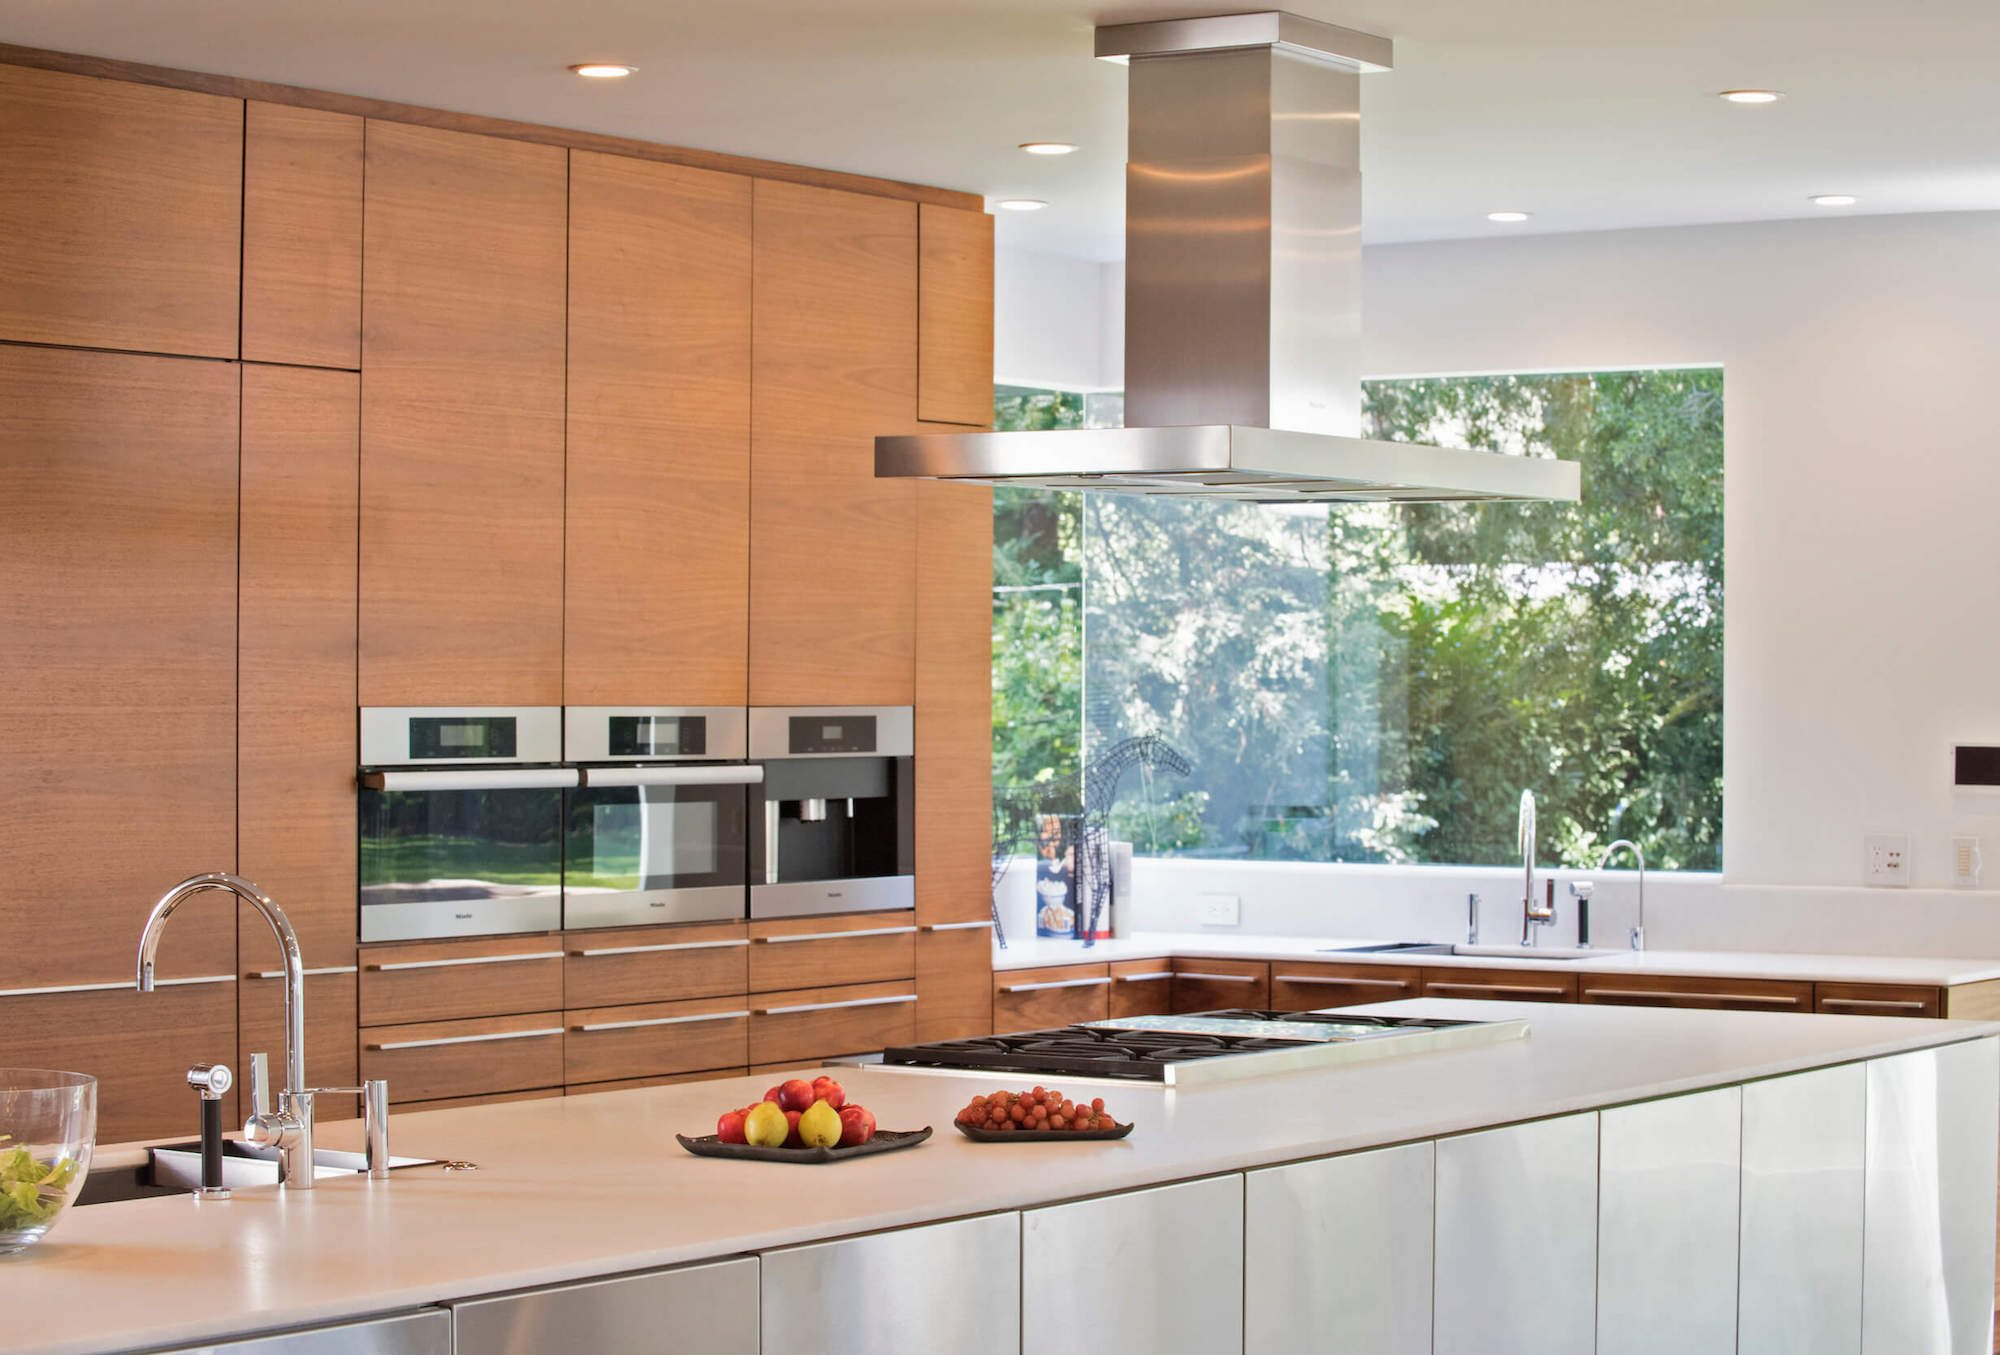 Horizontal grain matched wood kitchen cabinet design in Atherton San Francisco, Bay Area